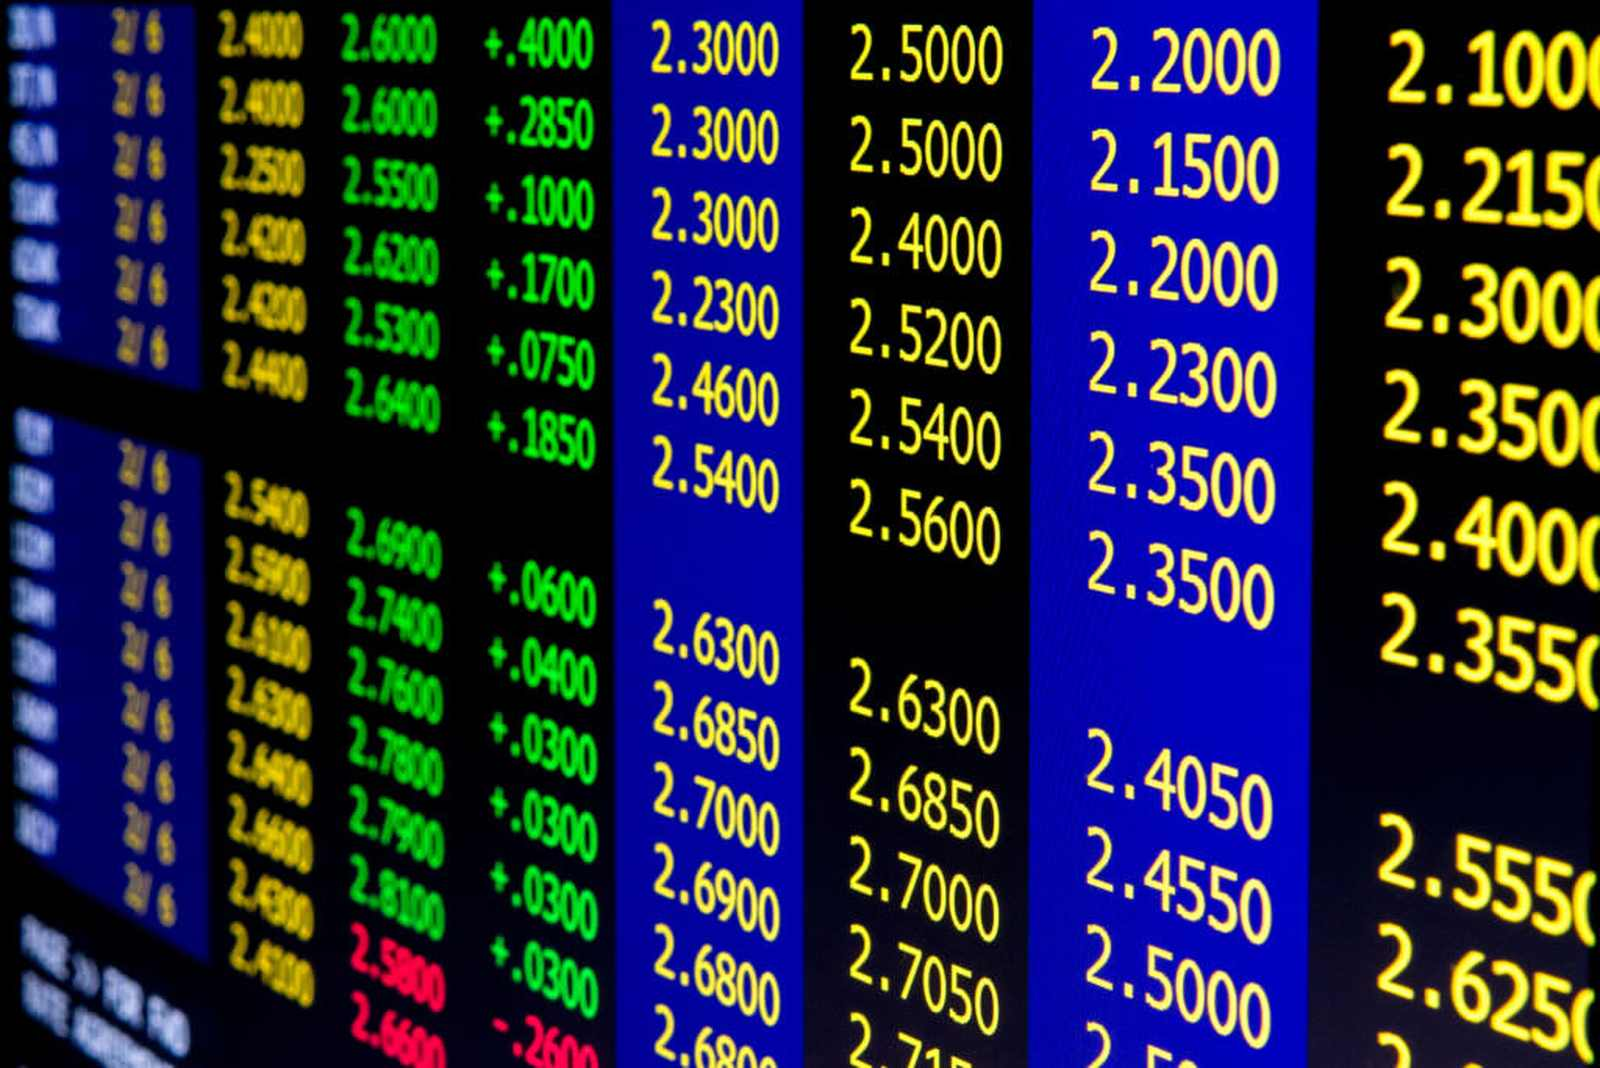 Want to know the recent trends in online trading